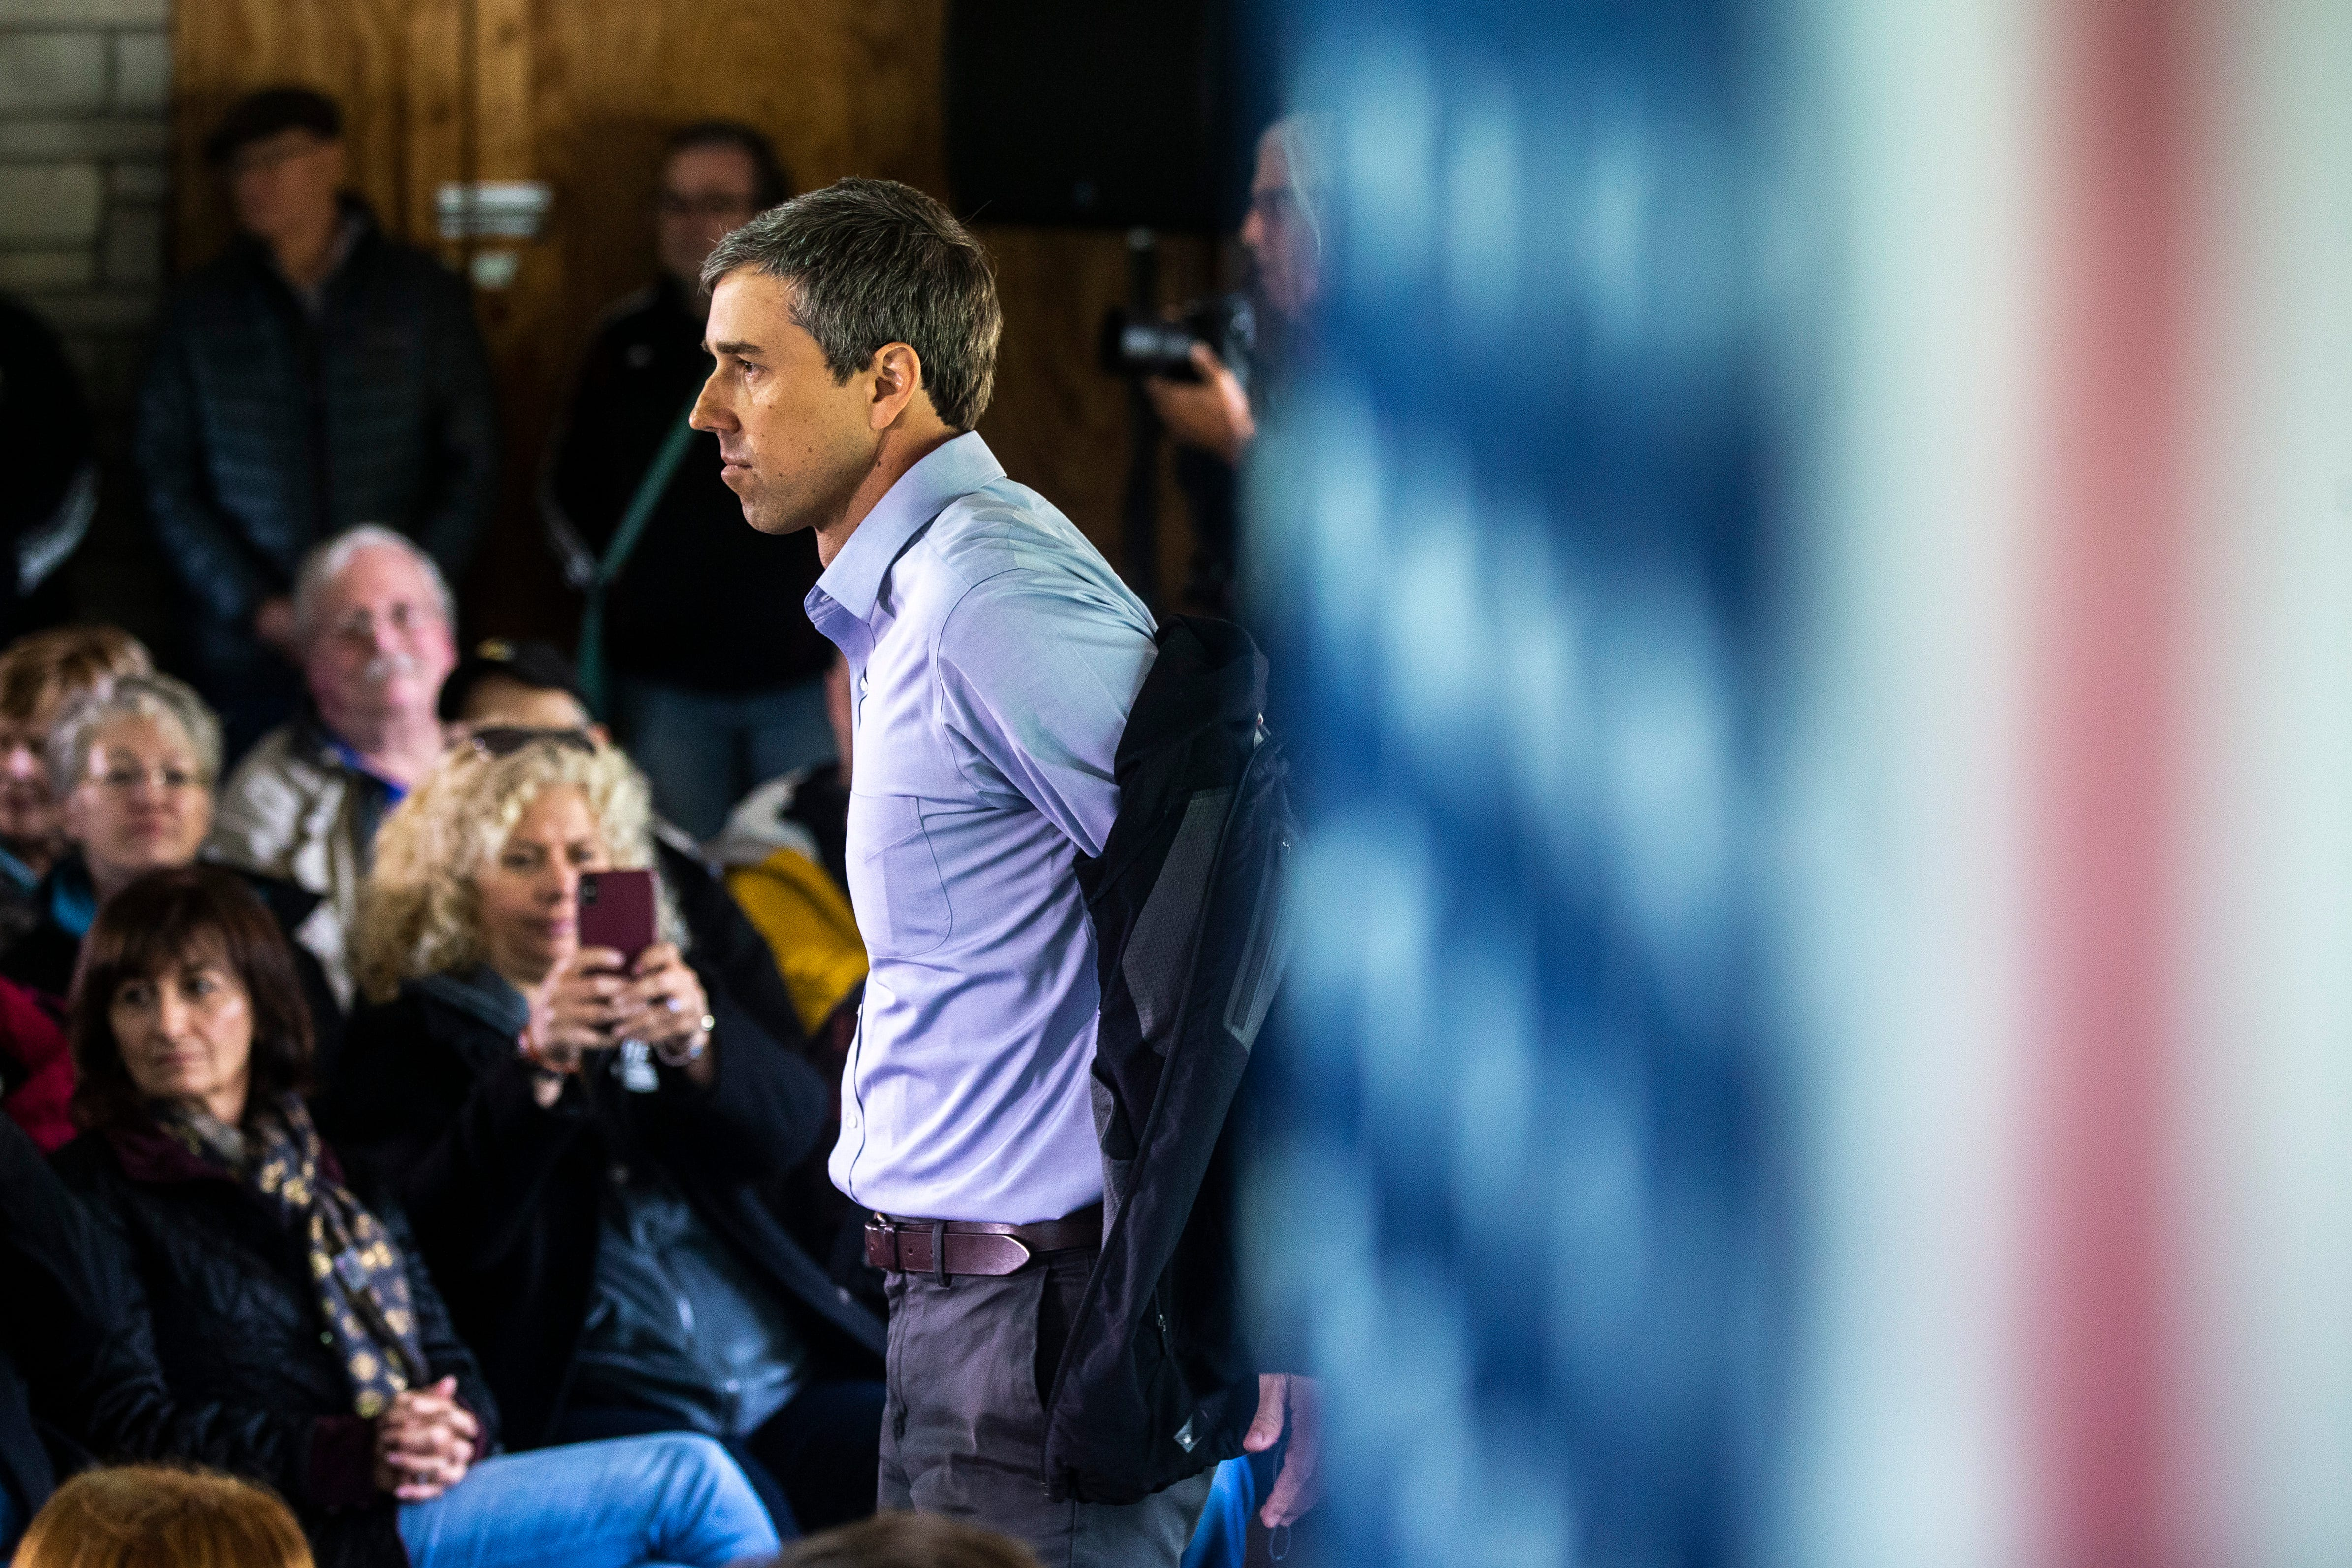 Beto O'Rourke calls for Trump's impeachment, but shies from some activists' rallying cries